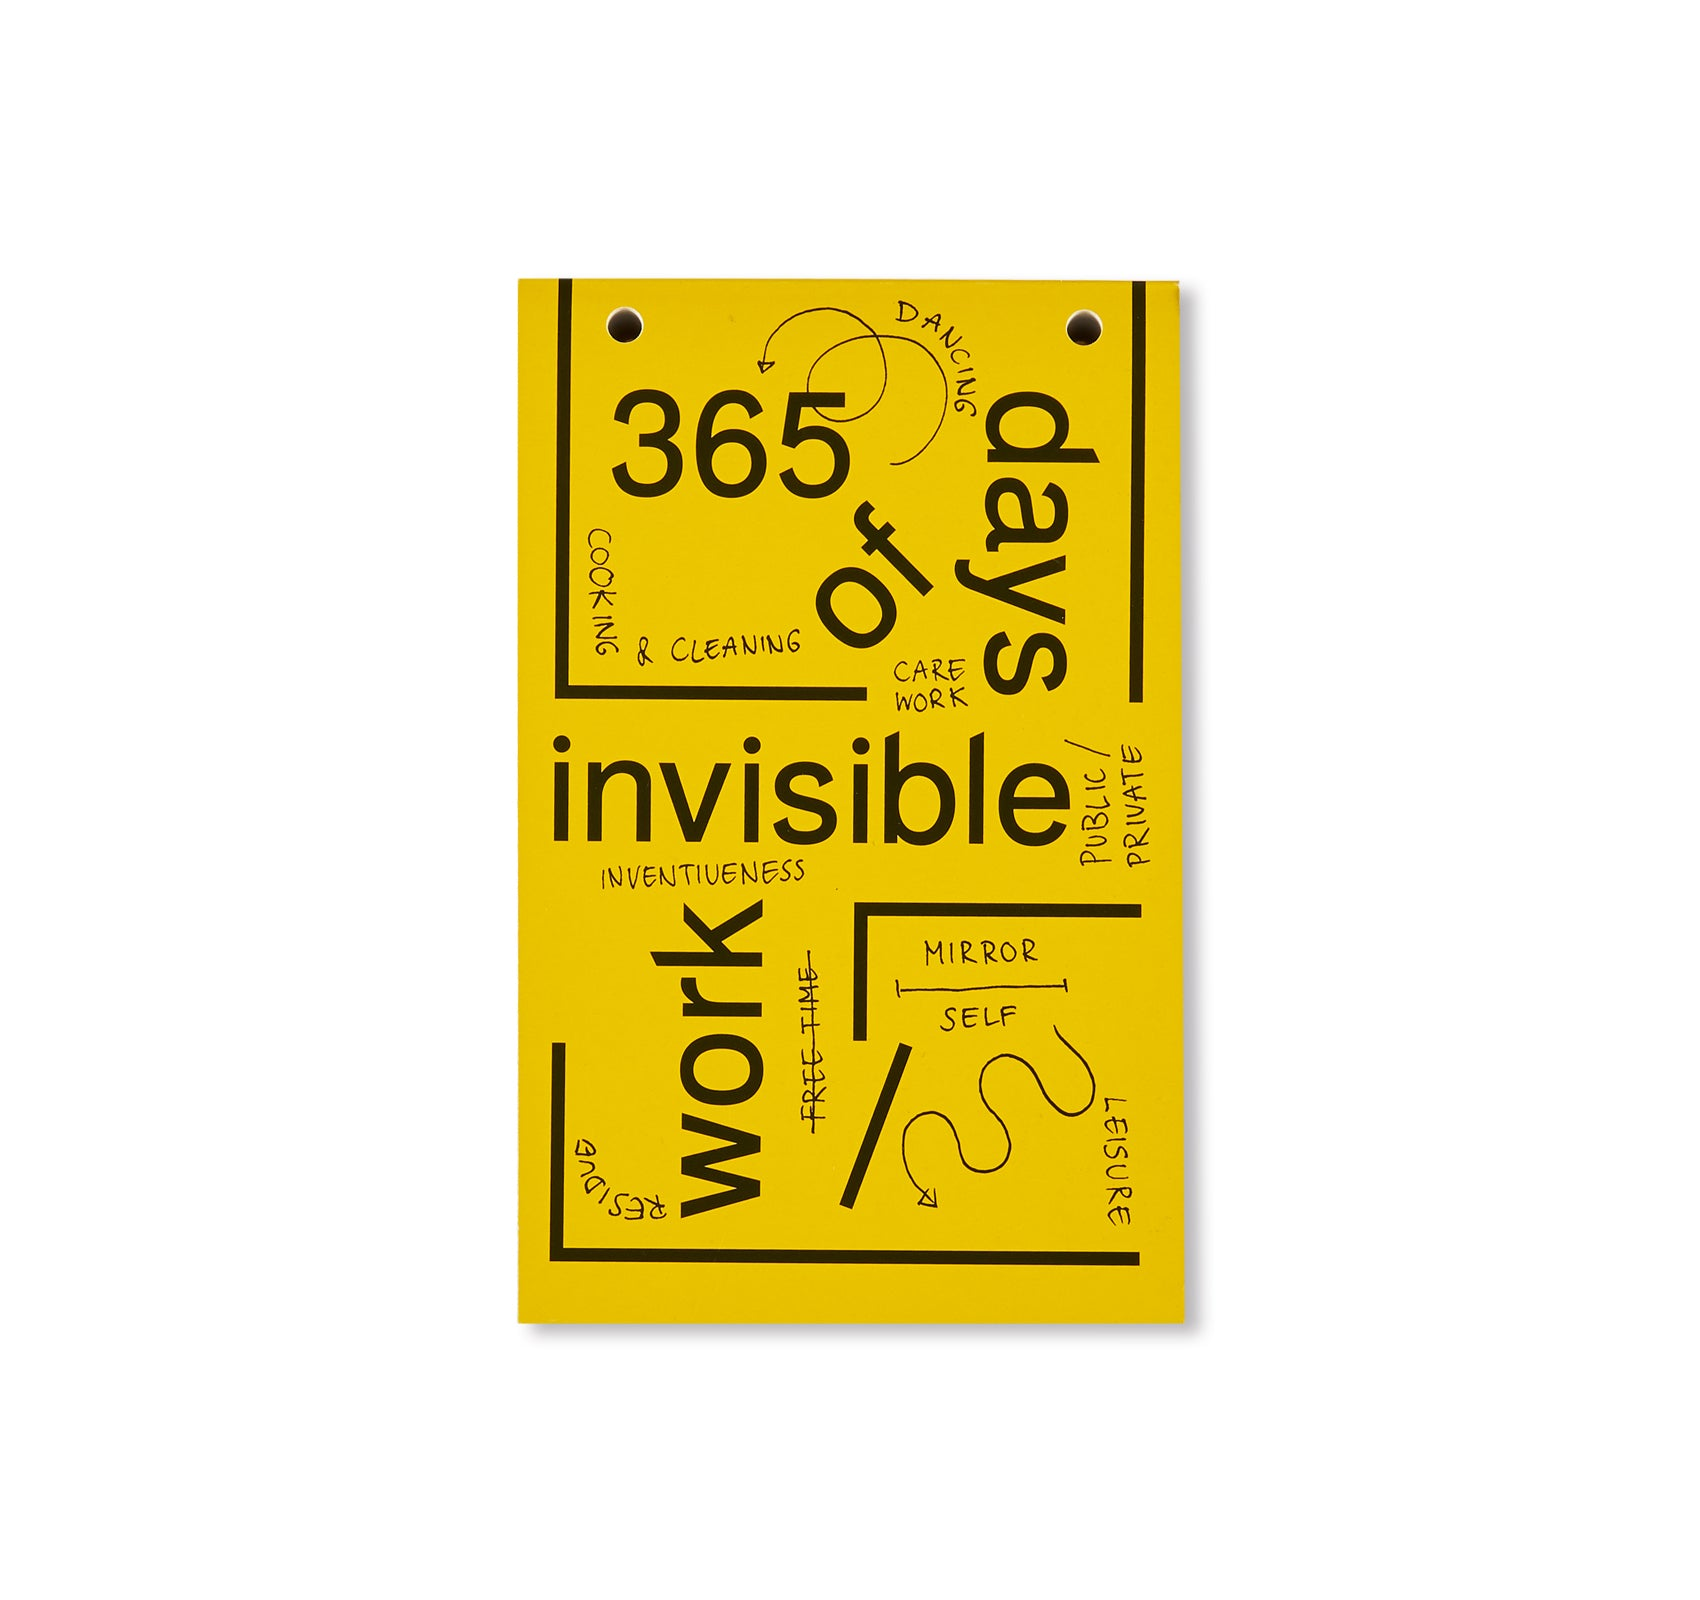 365 DAYS OF INVISIBLE WORK by Werker Collective, Marina Vishmidt, Lisa Jeschke